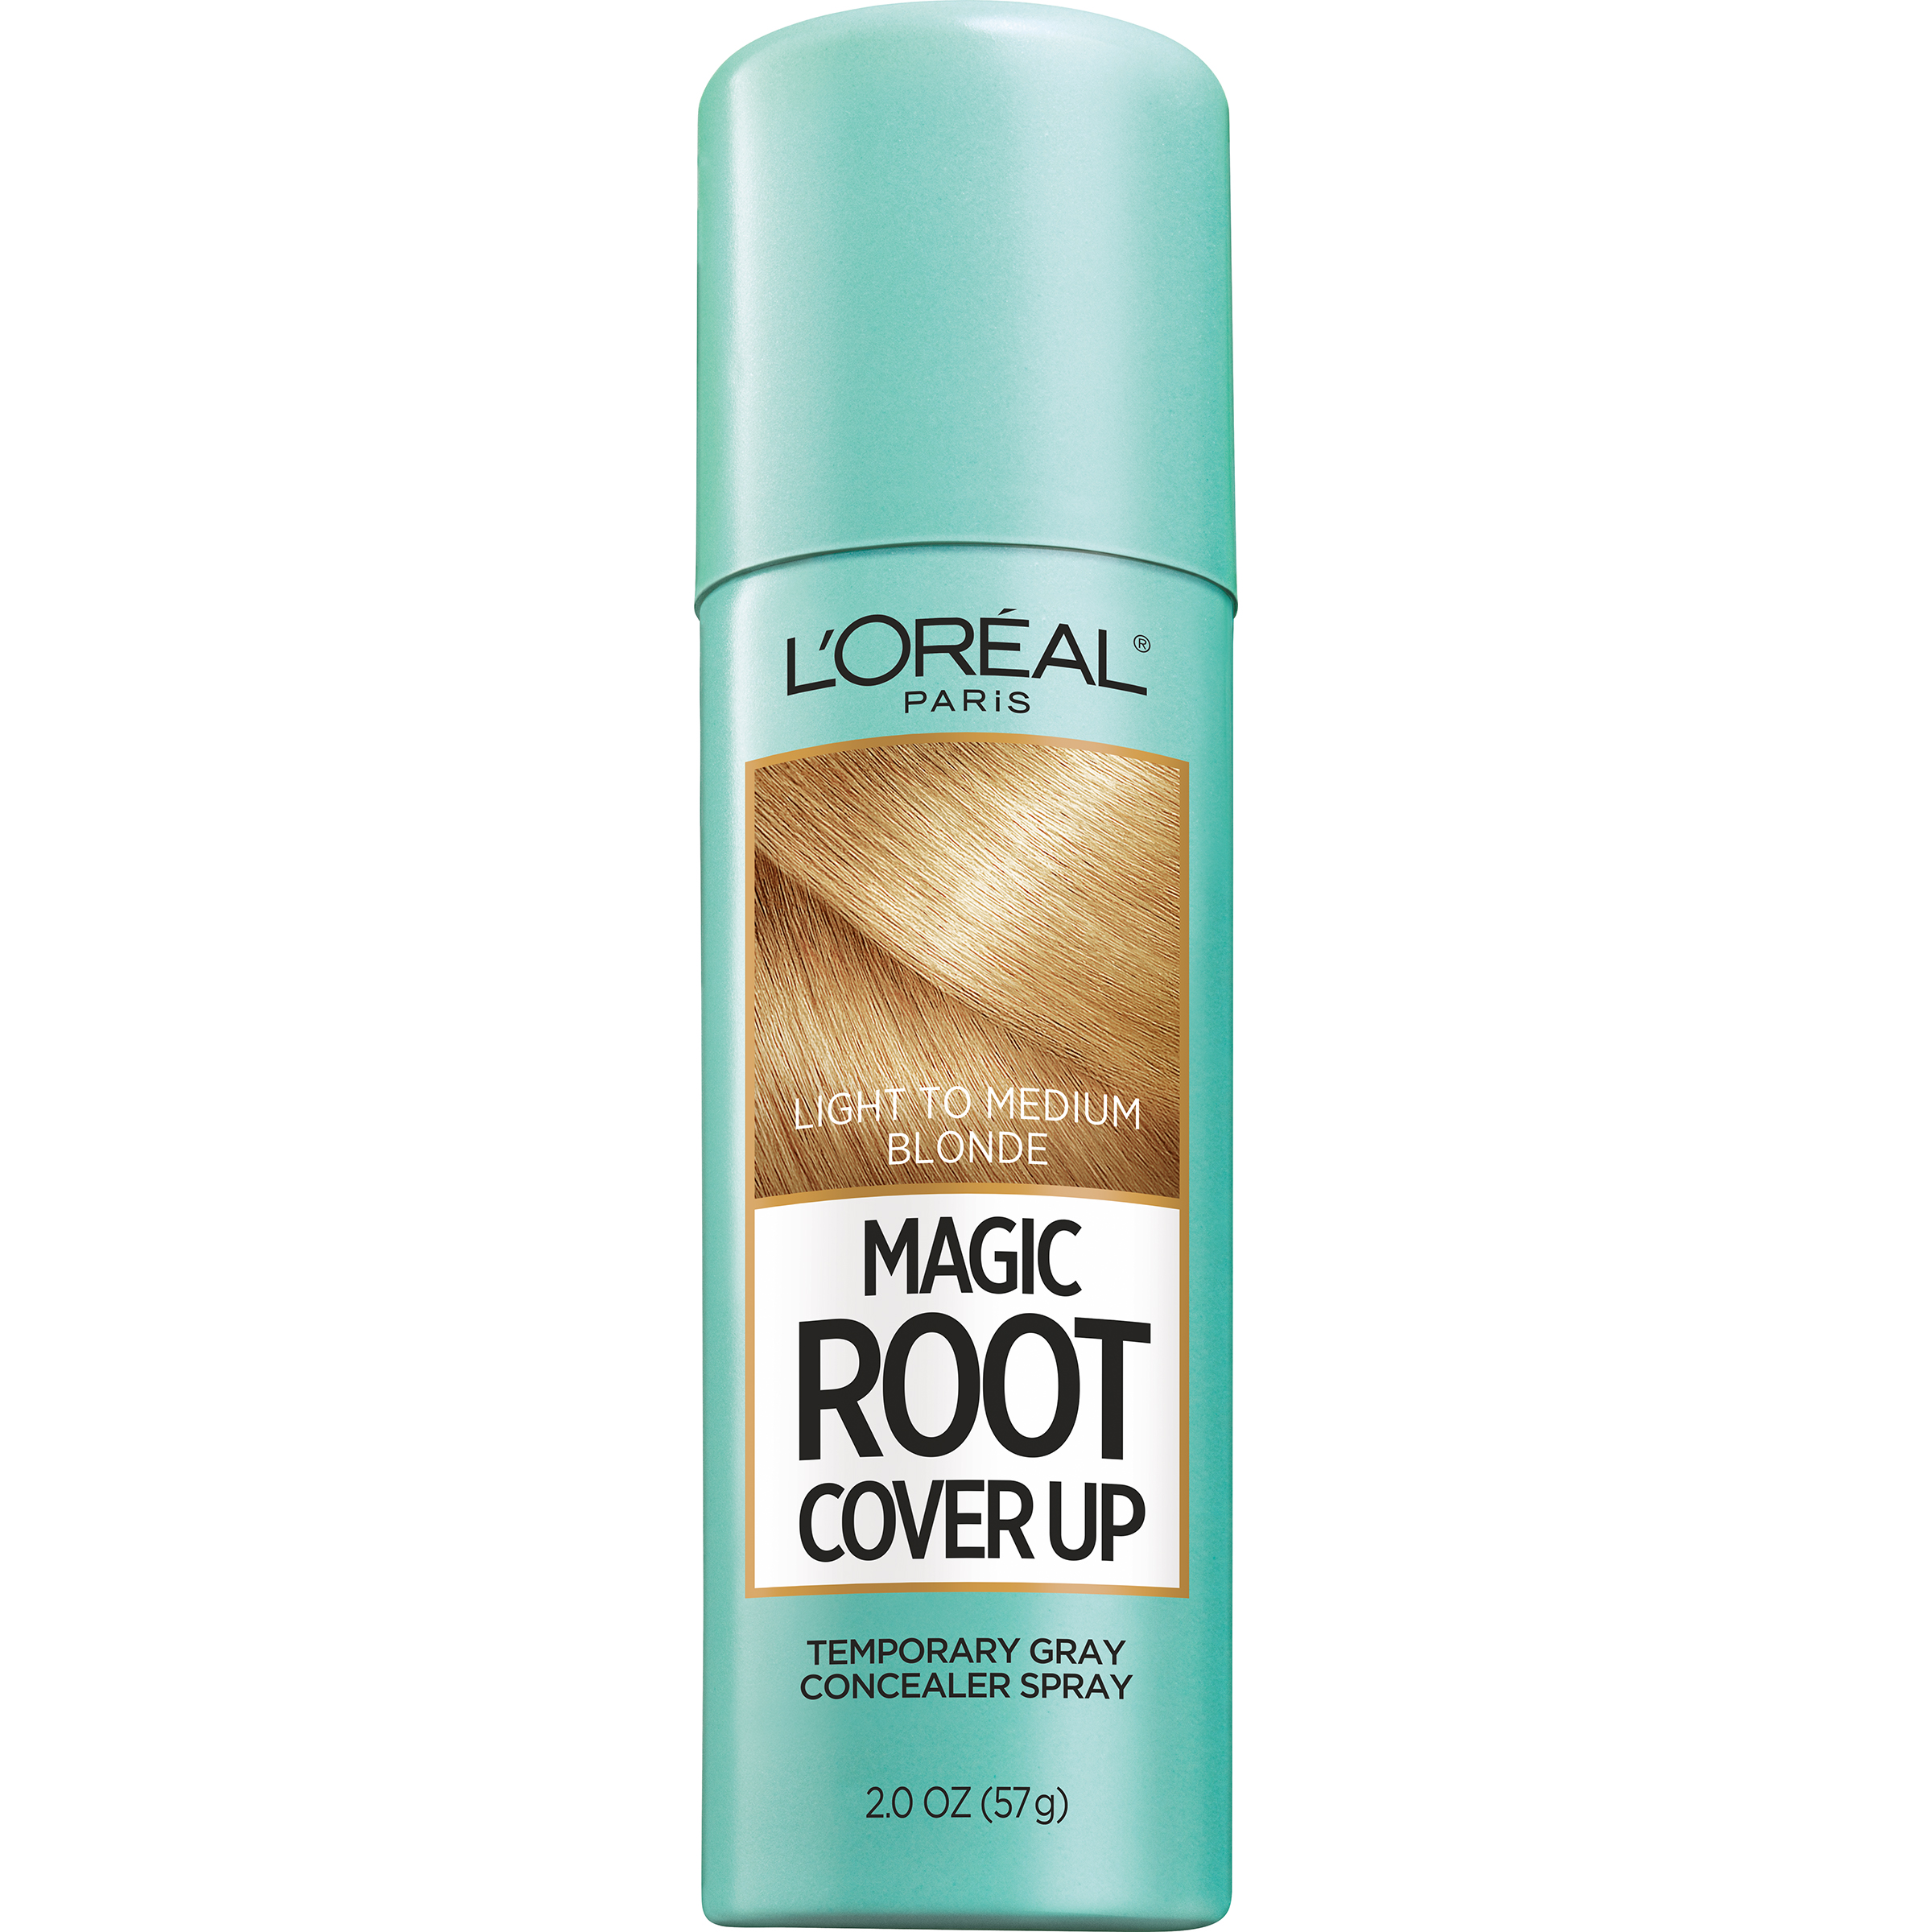 LOreal Paris Magic Root Cover Up Gray Concealer Hair Spray Light to Medium Blonde